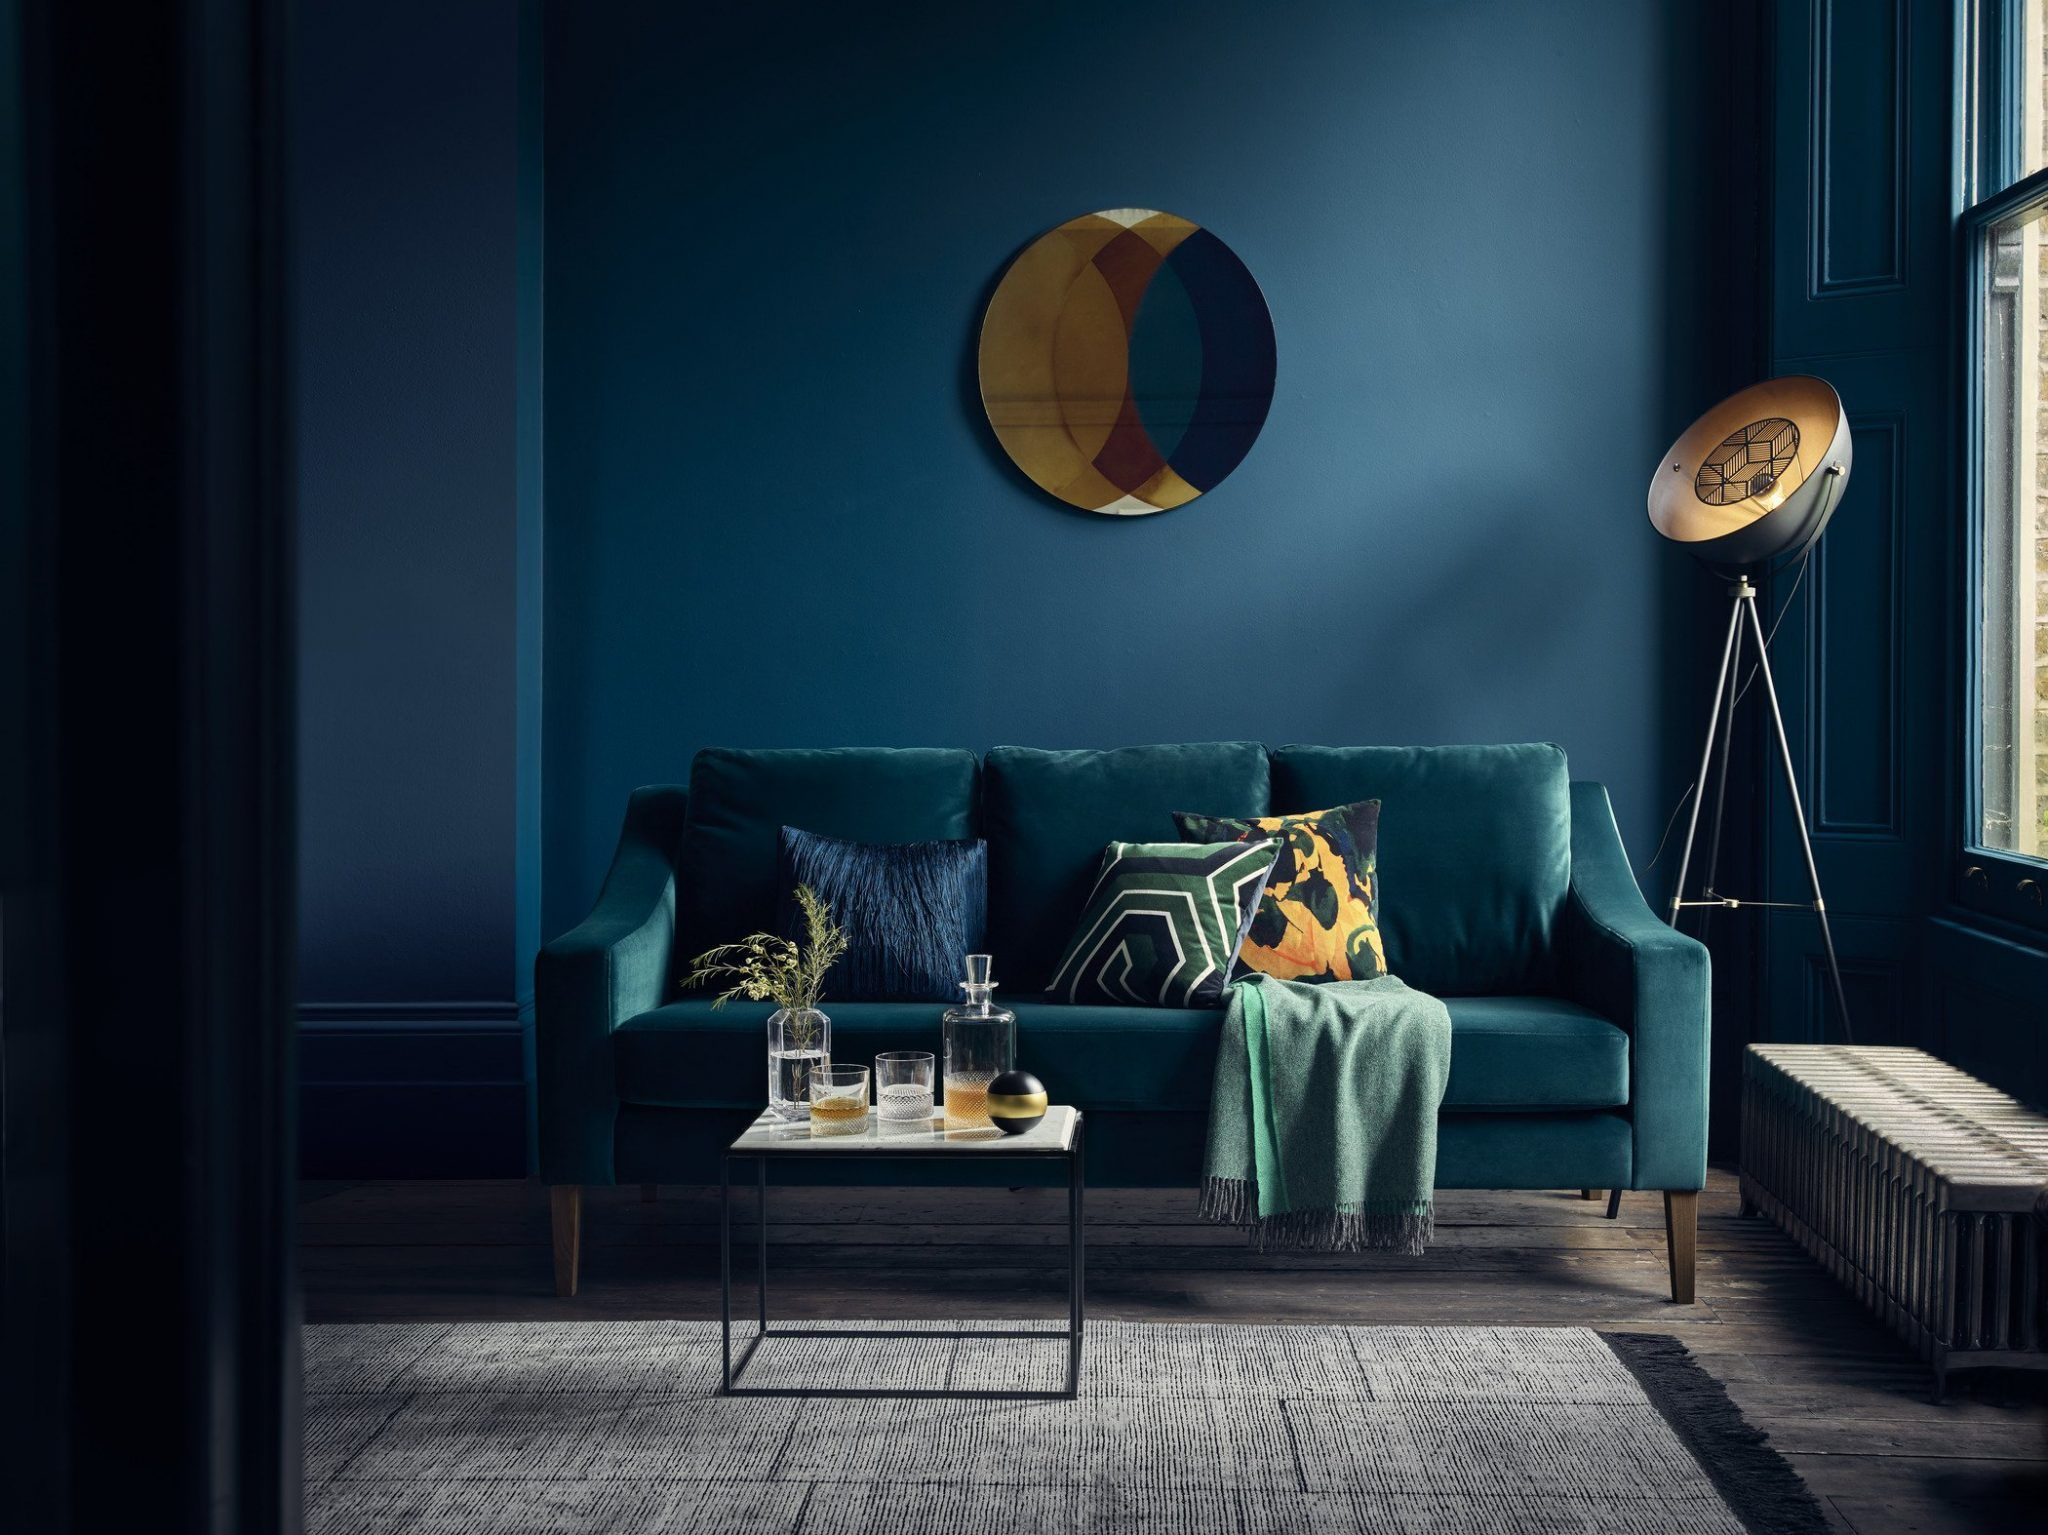 10 Teal Living Room Ideas 2020 The Color Effect In 2020 Teal Sofa Living Room Blue Living Room Decor Teal Room Decor #teal #living #room #decor #ideas